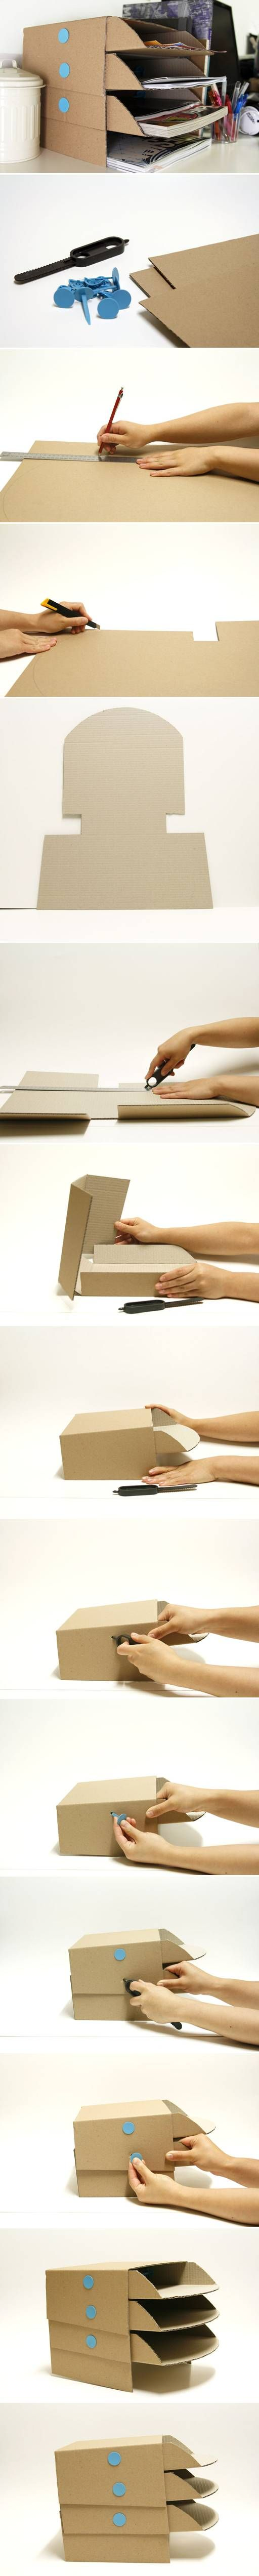 DIY Cardboard office Desktop storage Trays (DIY Creative Ideas)